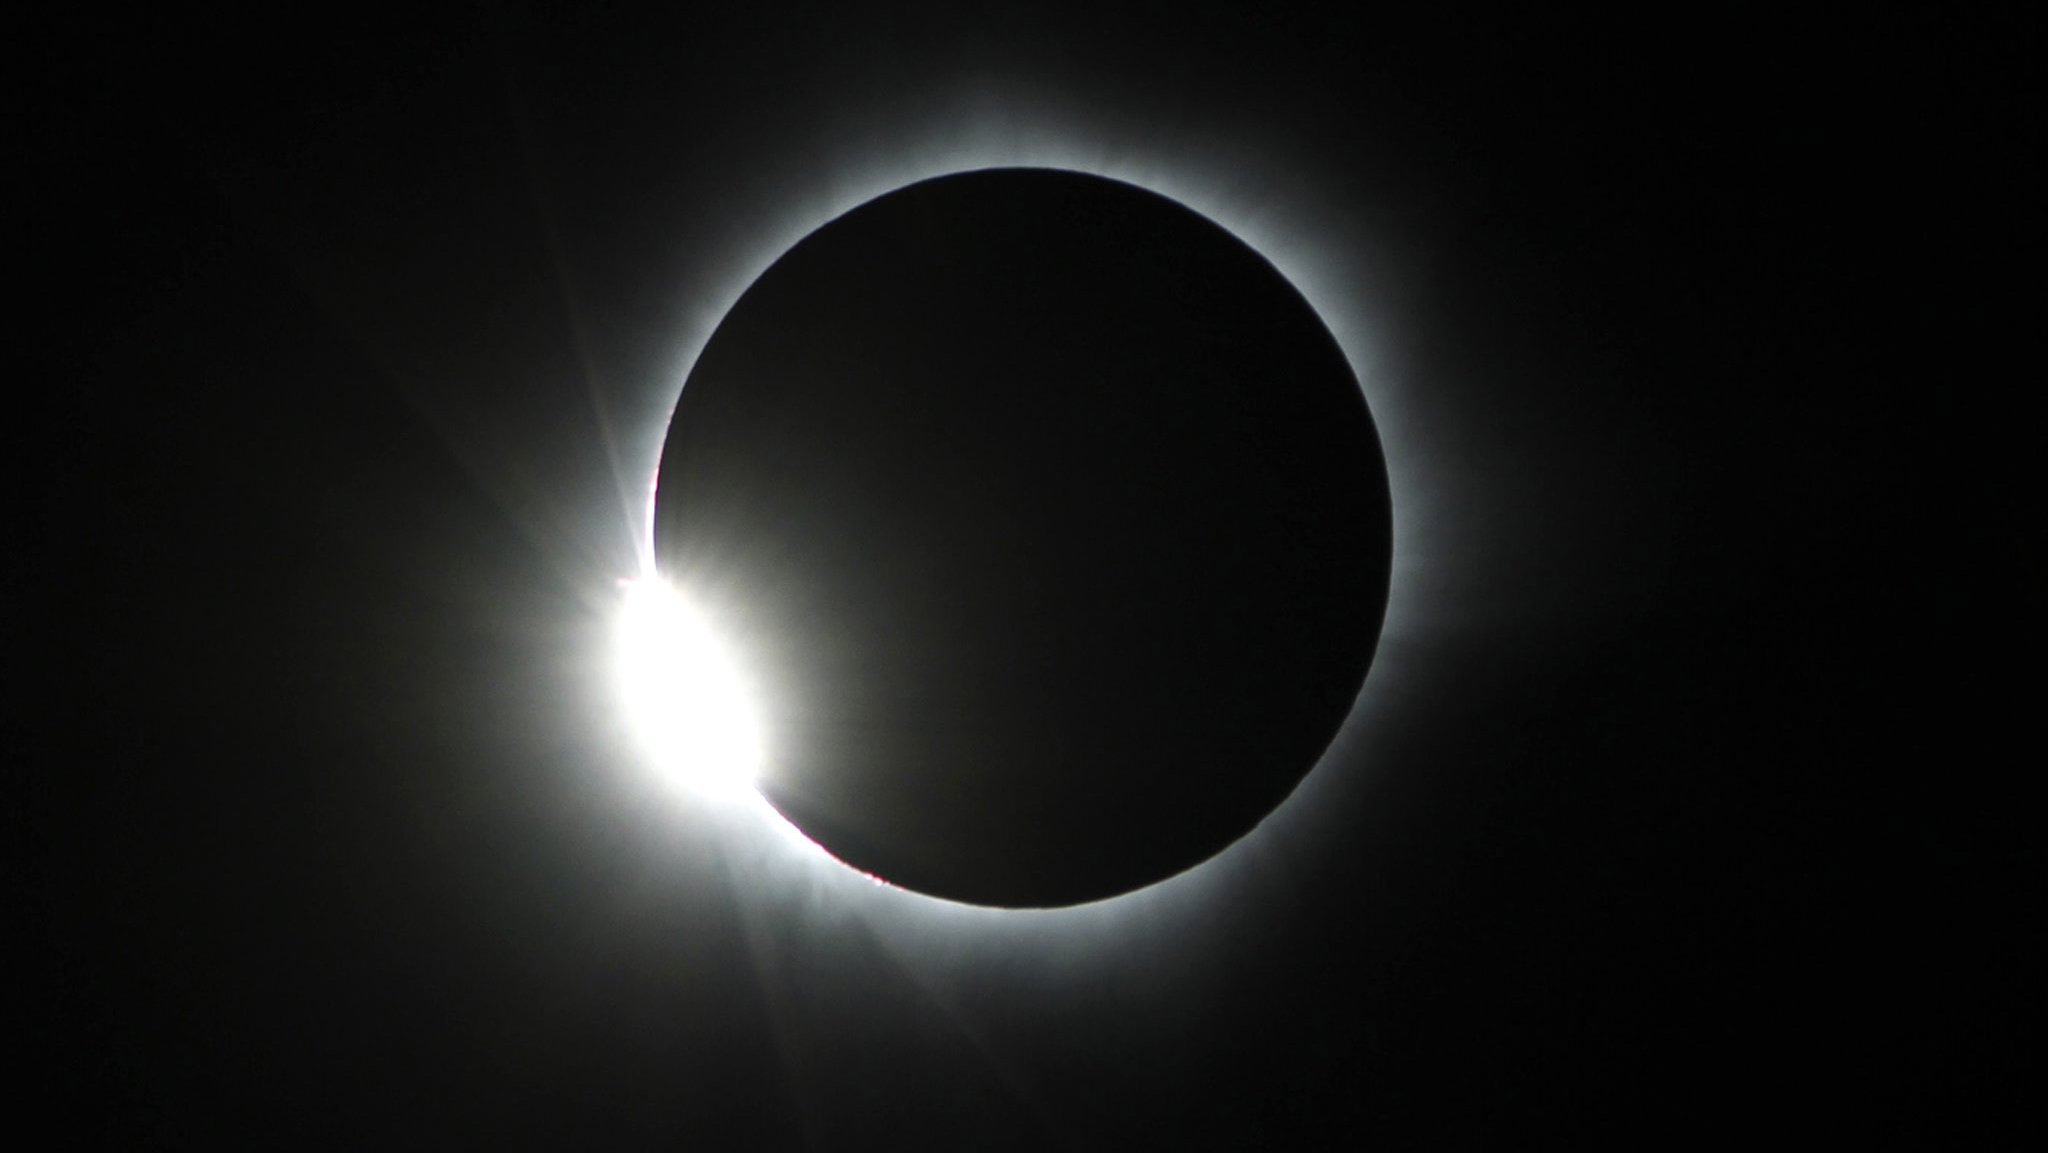 10tb-eclipse6-superjumbo-v2.jpg